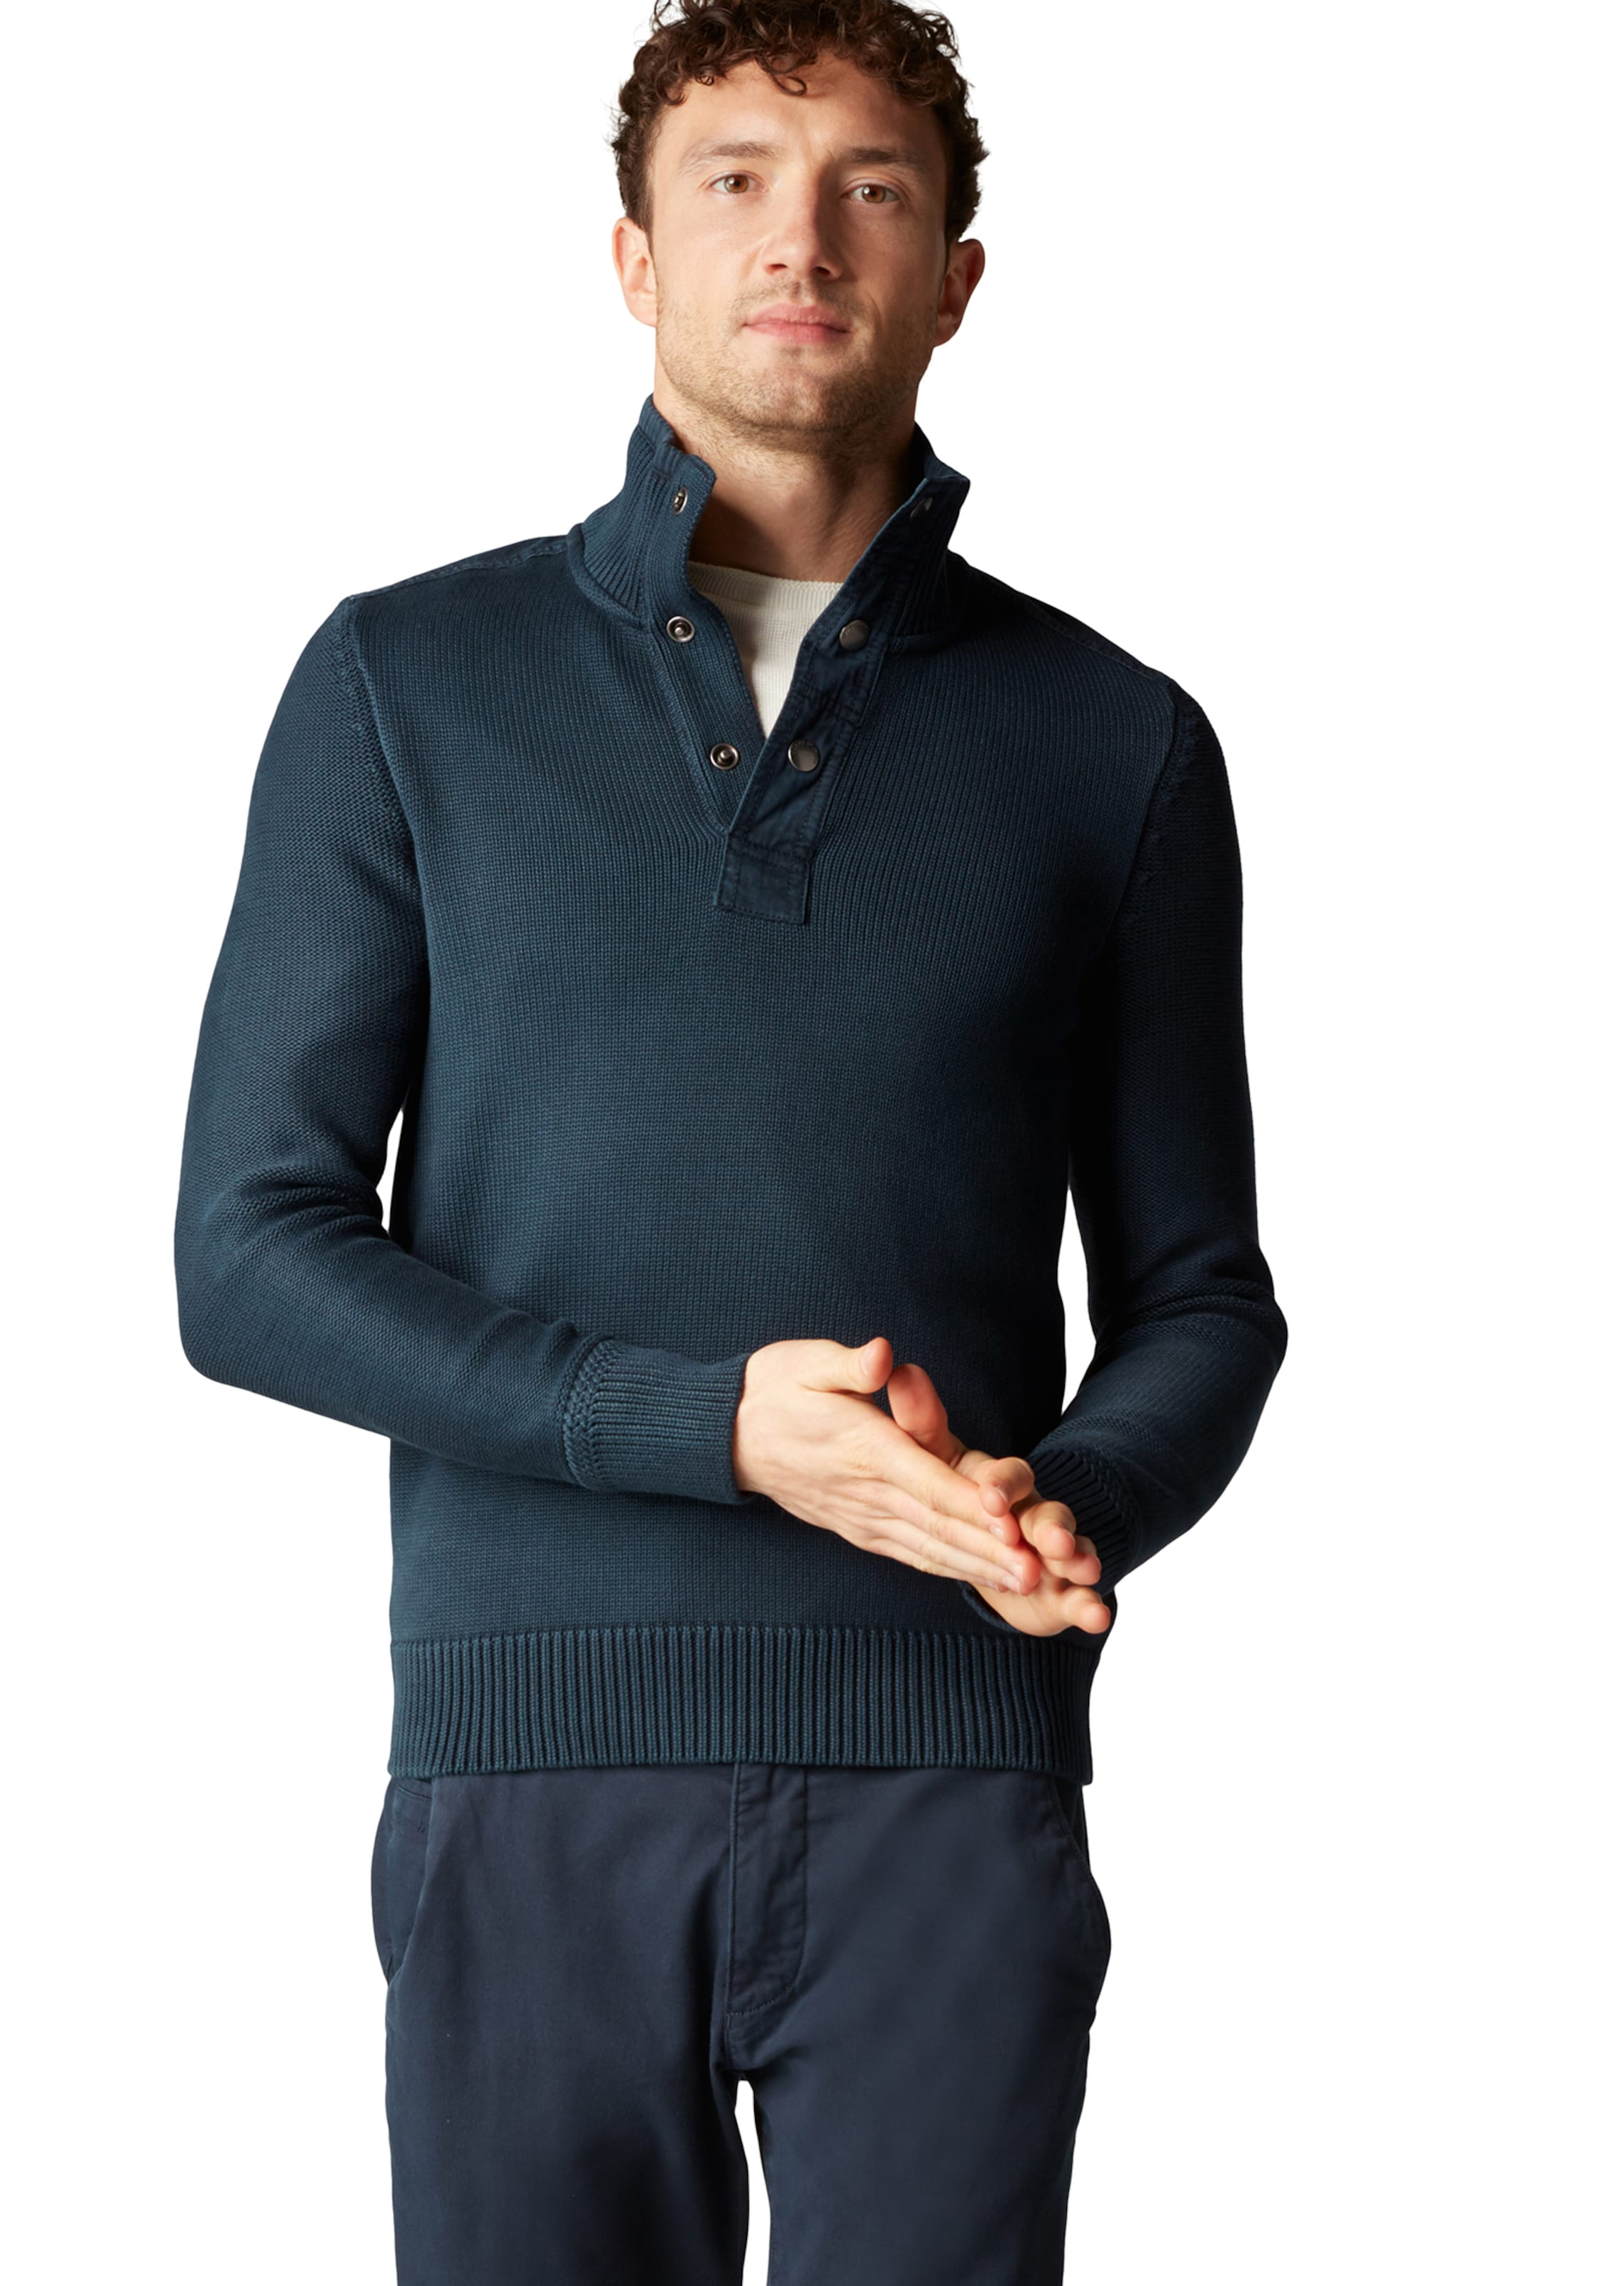 Strickpullover O'polo Nachtblau Marc In htrdCQs